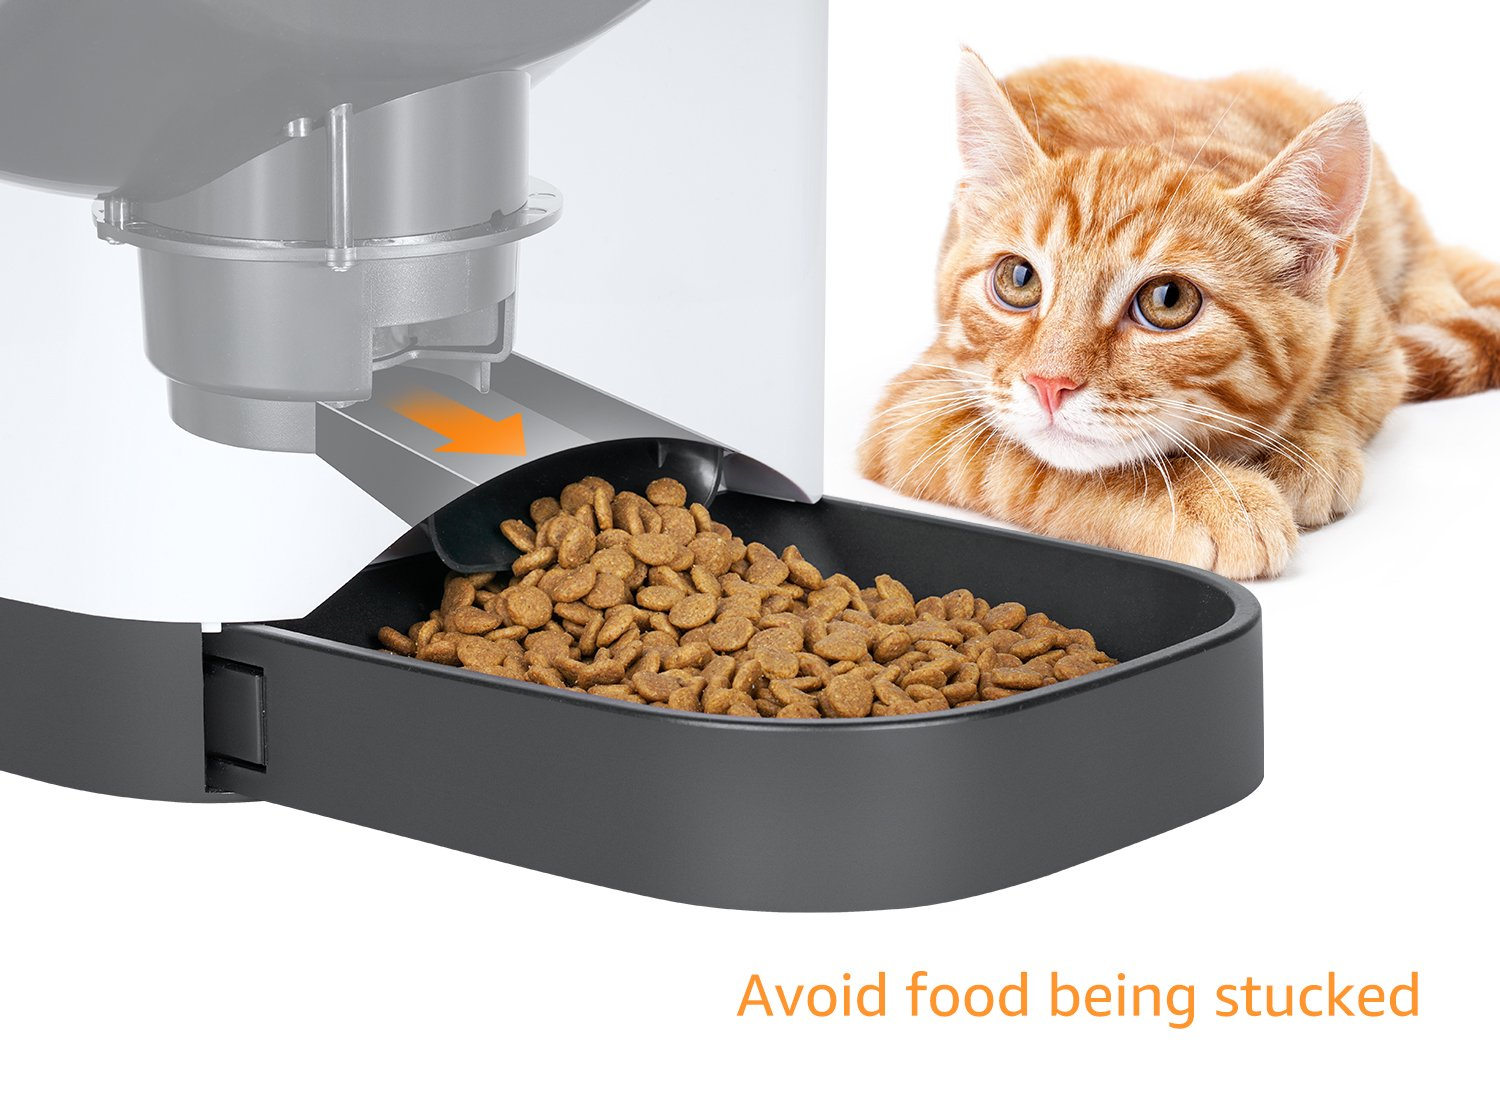 Smart Automatic Cat Feeder - SUKI&SAMI Pet Food Dispenser, with Timer Programmable, Voice Recording, WI-FI Enabled APP control Up to 8 Meals a Day by SUKI&SAMI (Image #4)